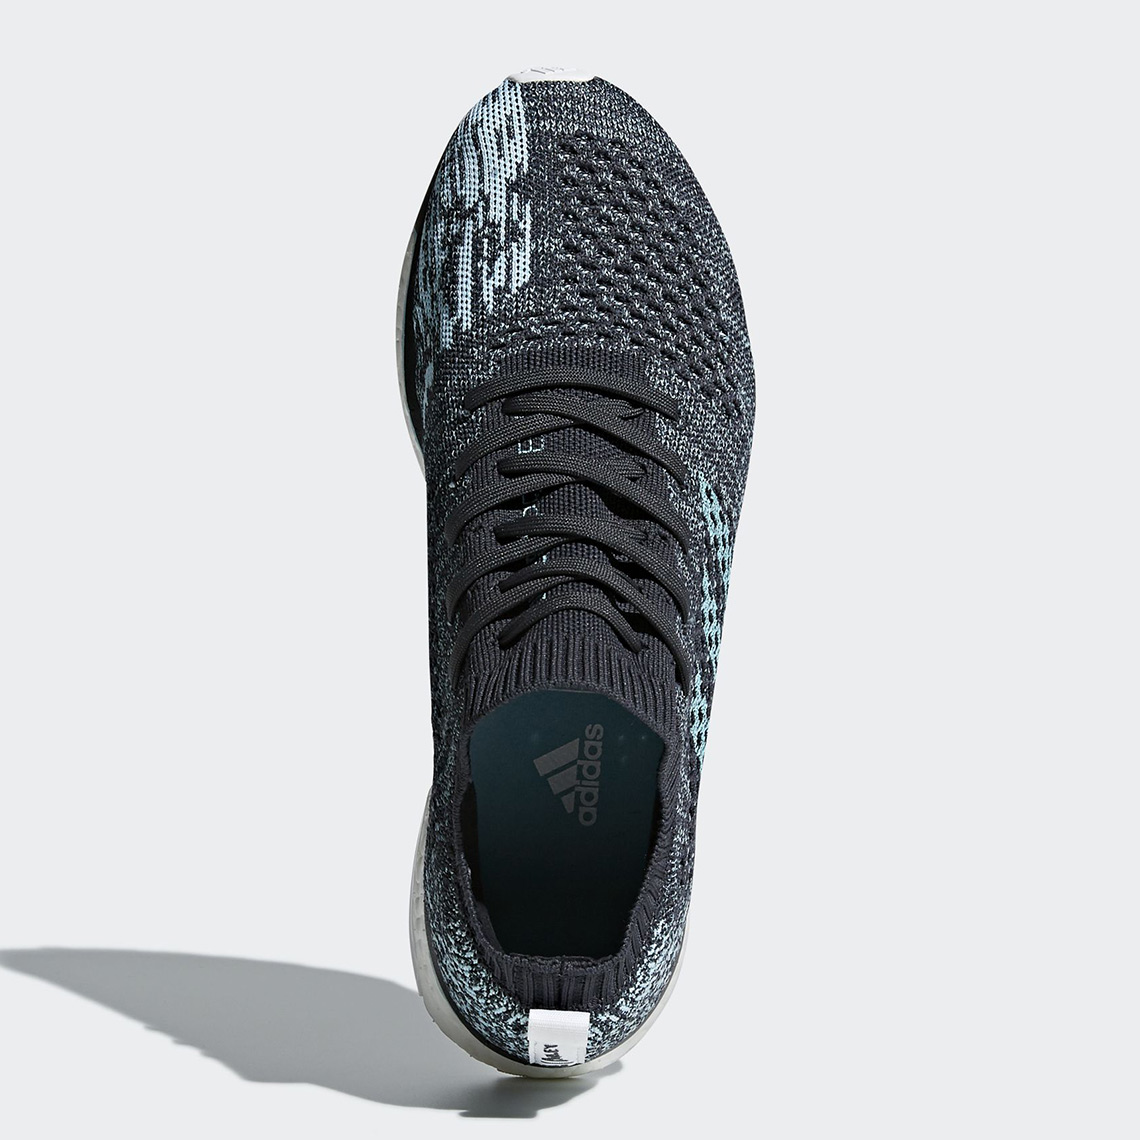 5f3b910dbafb Parley For The Oceans And adidas To Release Five Shoe Collection In ...